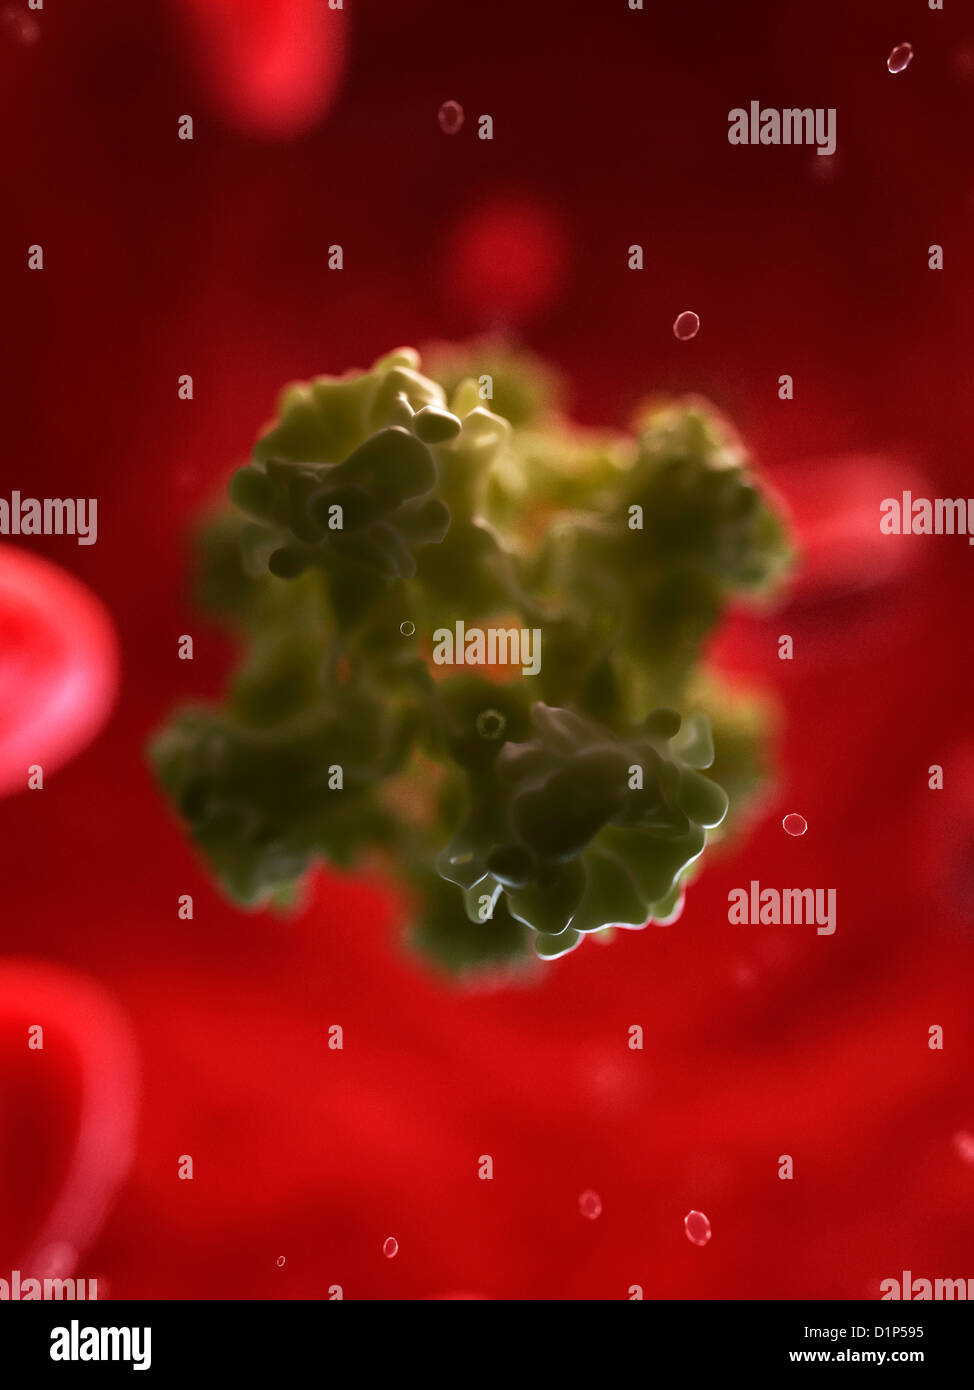 HPV infection, artwork - Stock Image